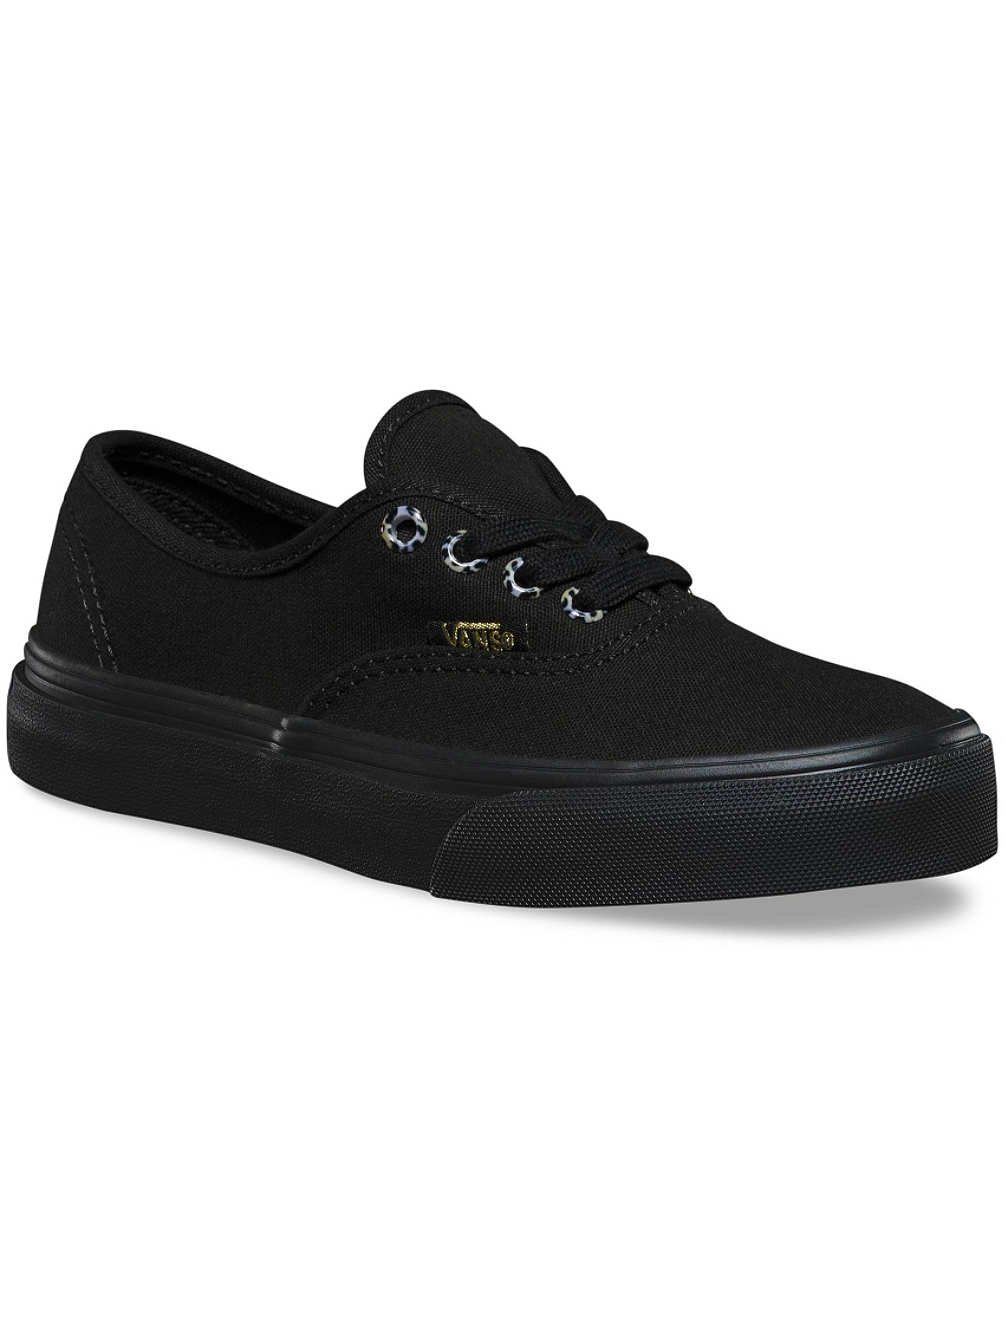 Vans Authentic (Canvas) Sneakers for Unisex Kids in Classic Colors, Stylish Prints and Fashionable Designs B018UUB9TW 11.5 Y US Cheetah/Black